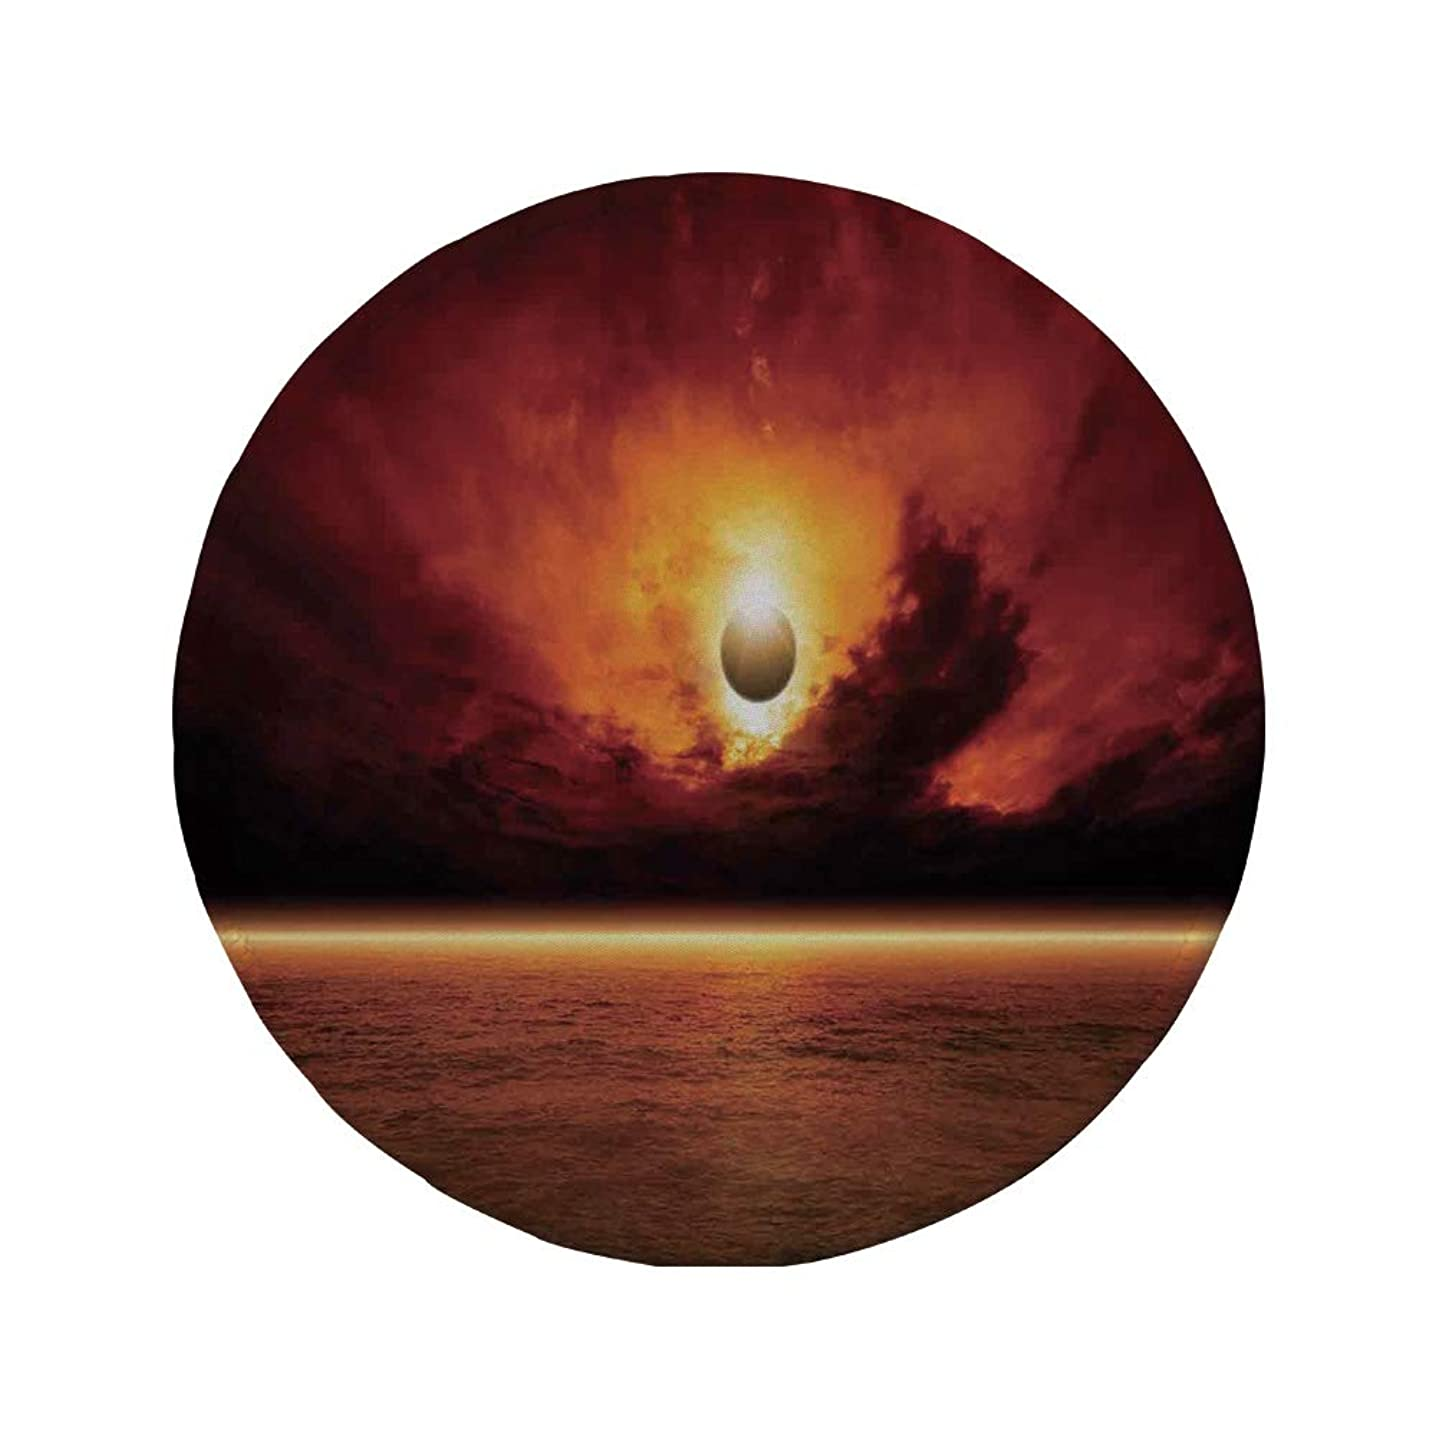 Non-Slip Rubber Round Mouse Pad,Mystic House Decor,Dramatic Apocalyptic Sun Eclipse View with Dark Red Sky Sea Horizon Decorative,Orange and Yellow,7.87